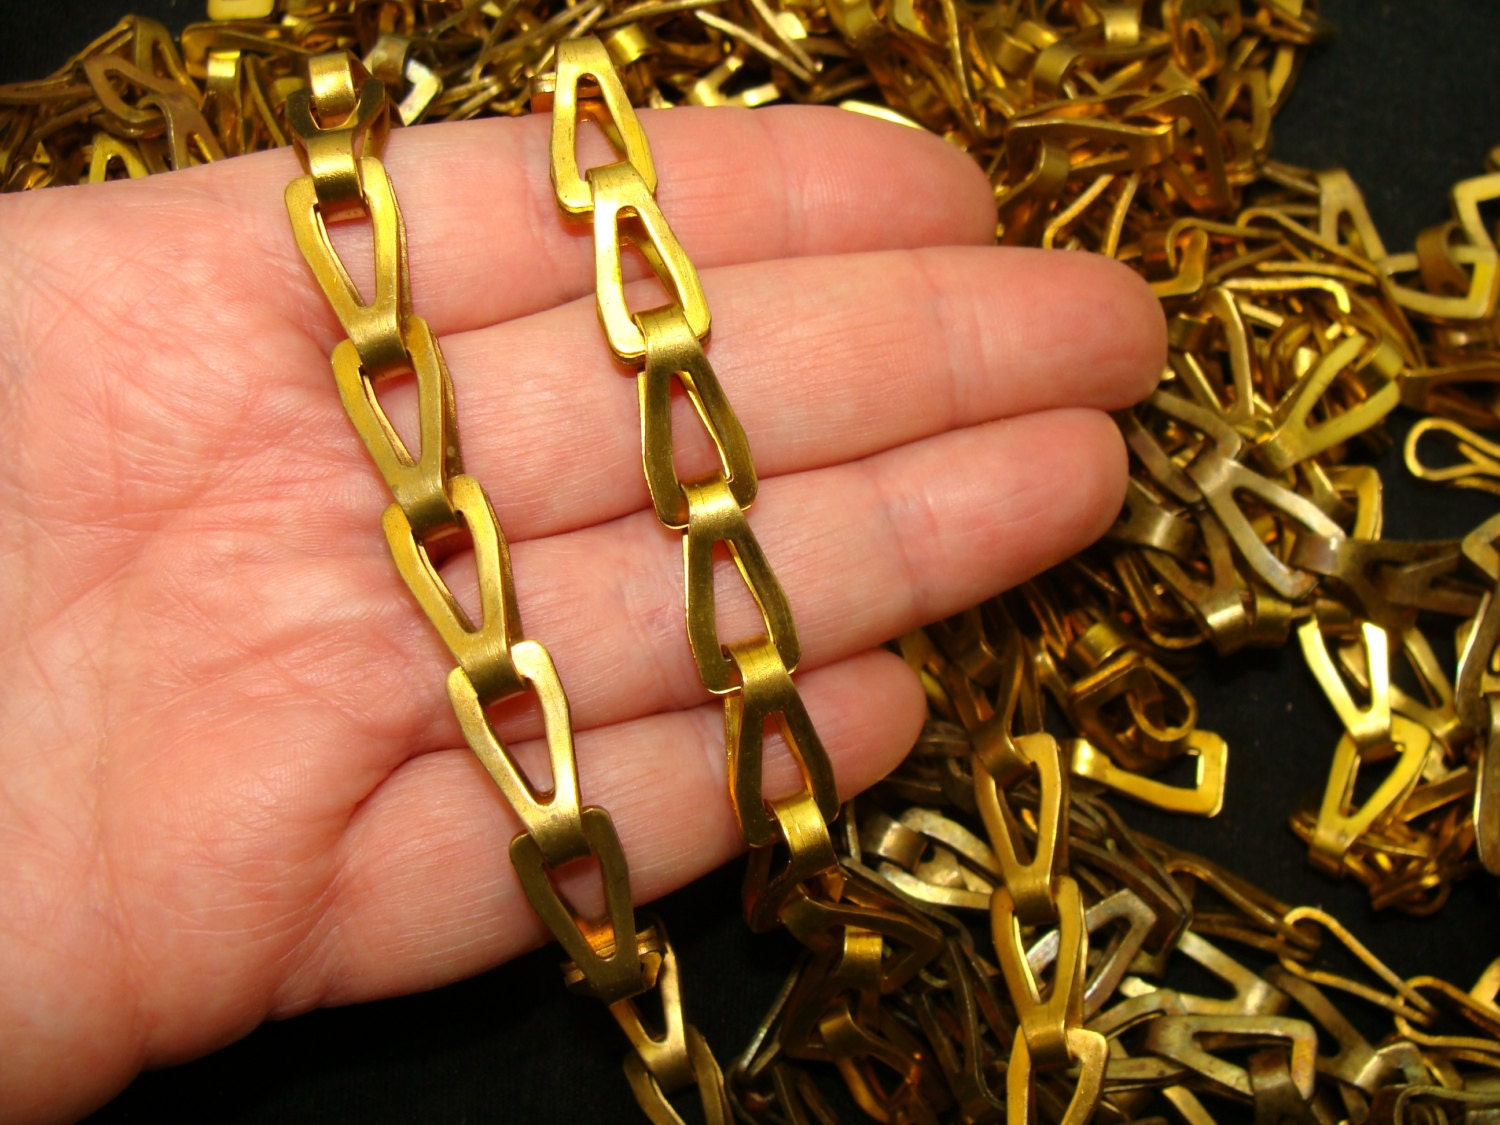 for chain open making p link chc electroplate cable elite pandahall gold jewelry chains brass twisted drop yard rose curb